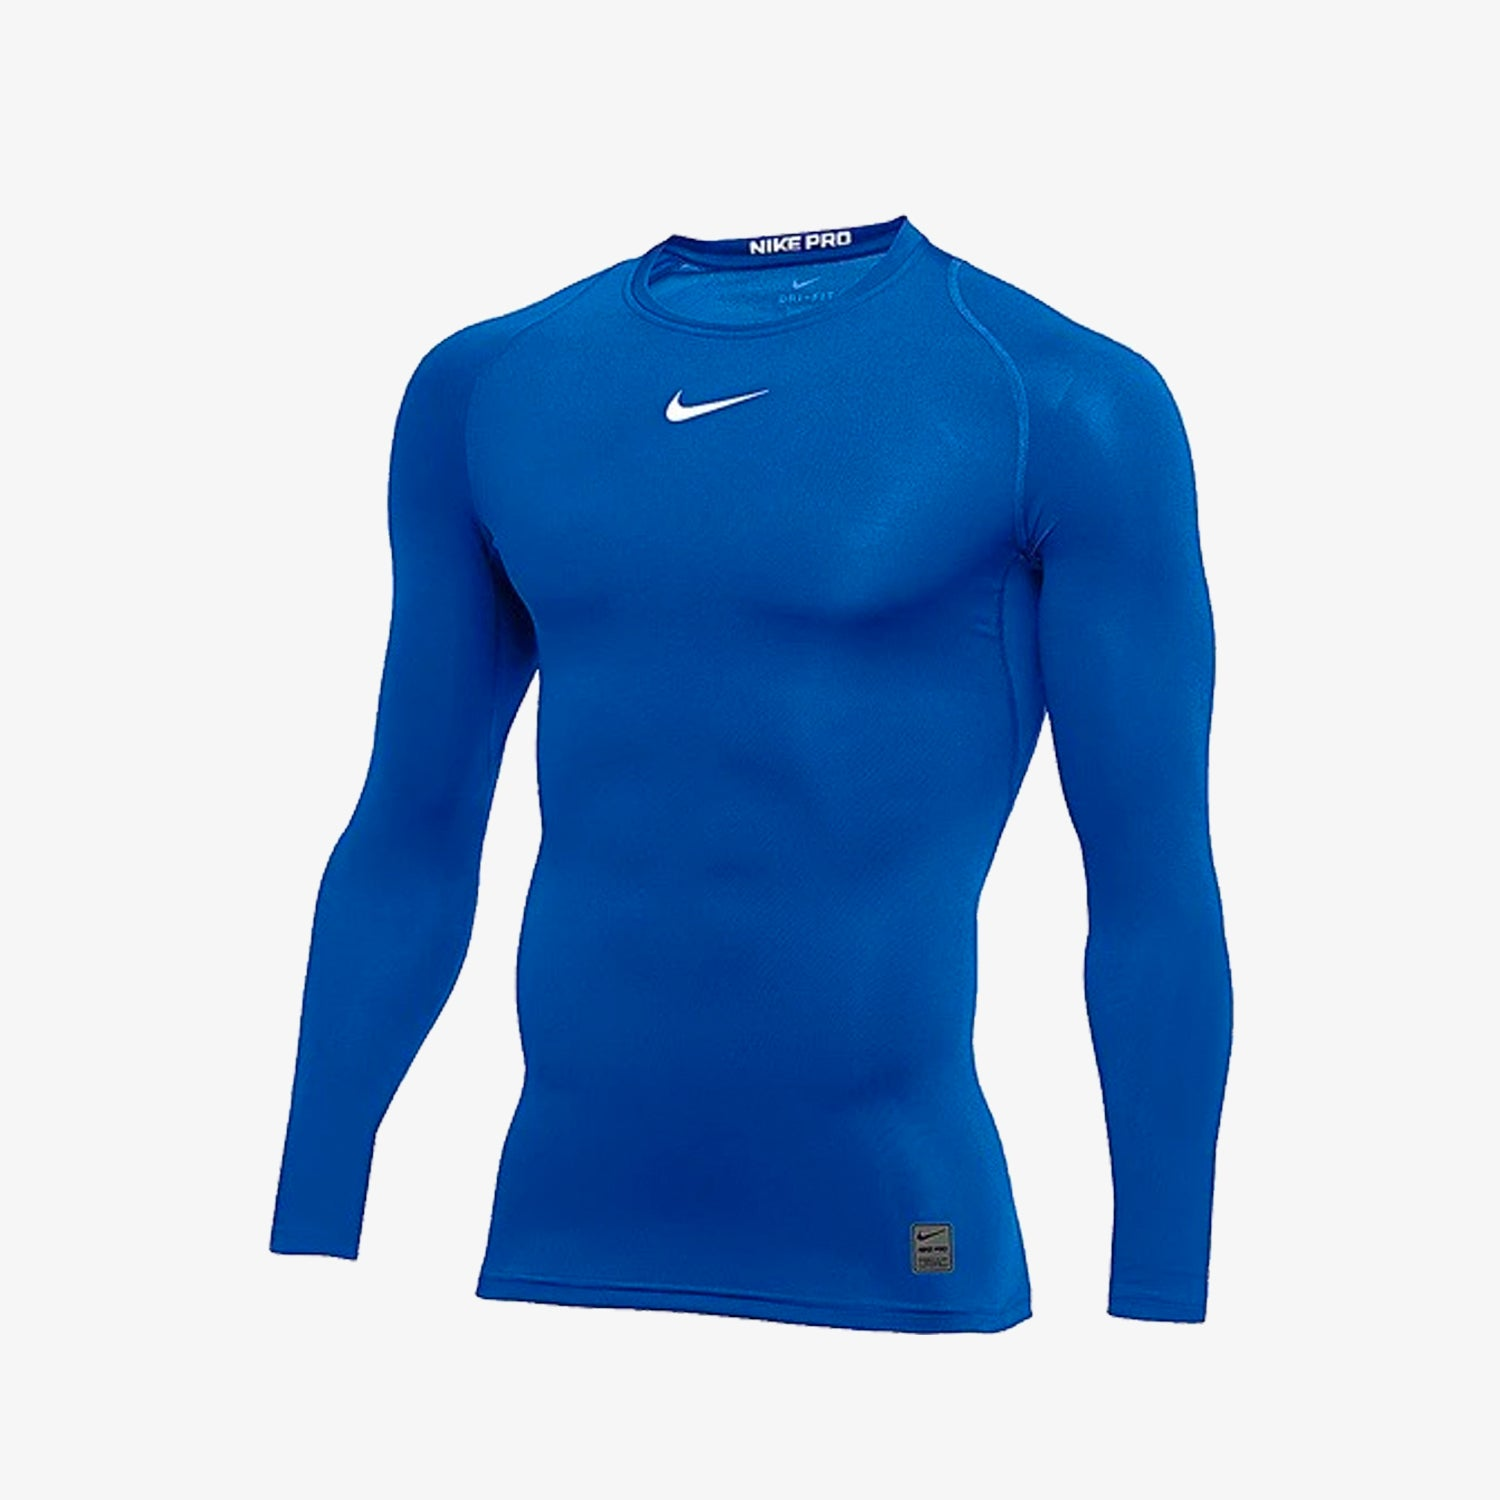 Mens Pro Compression Long-Sleeve Top